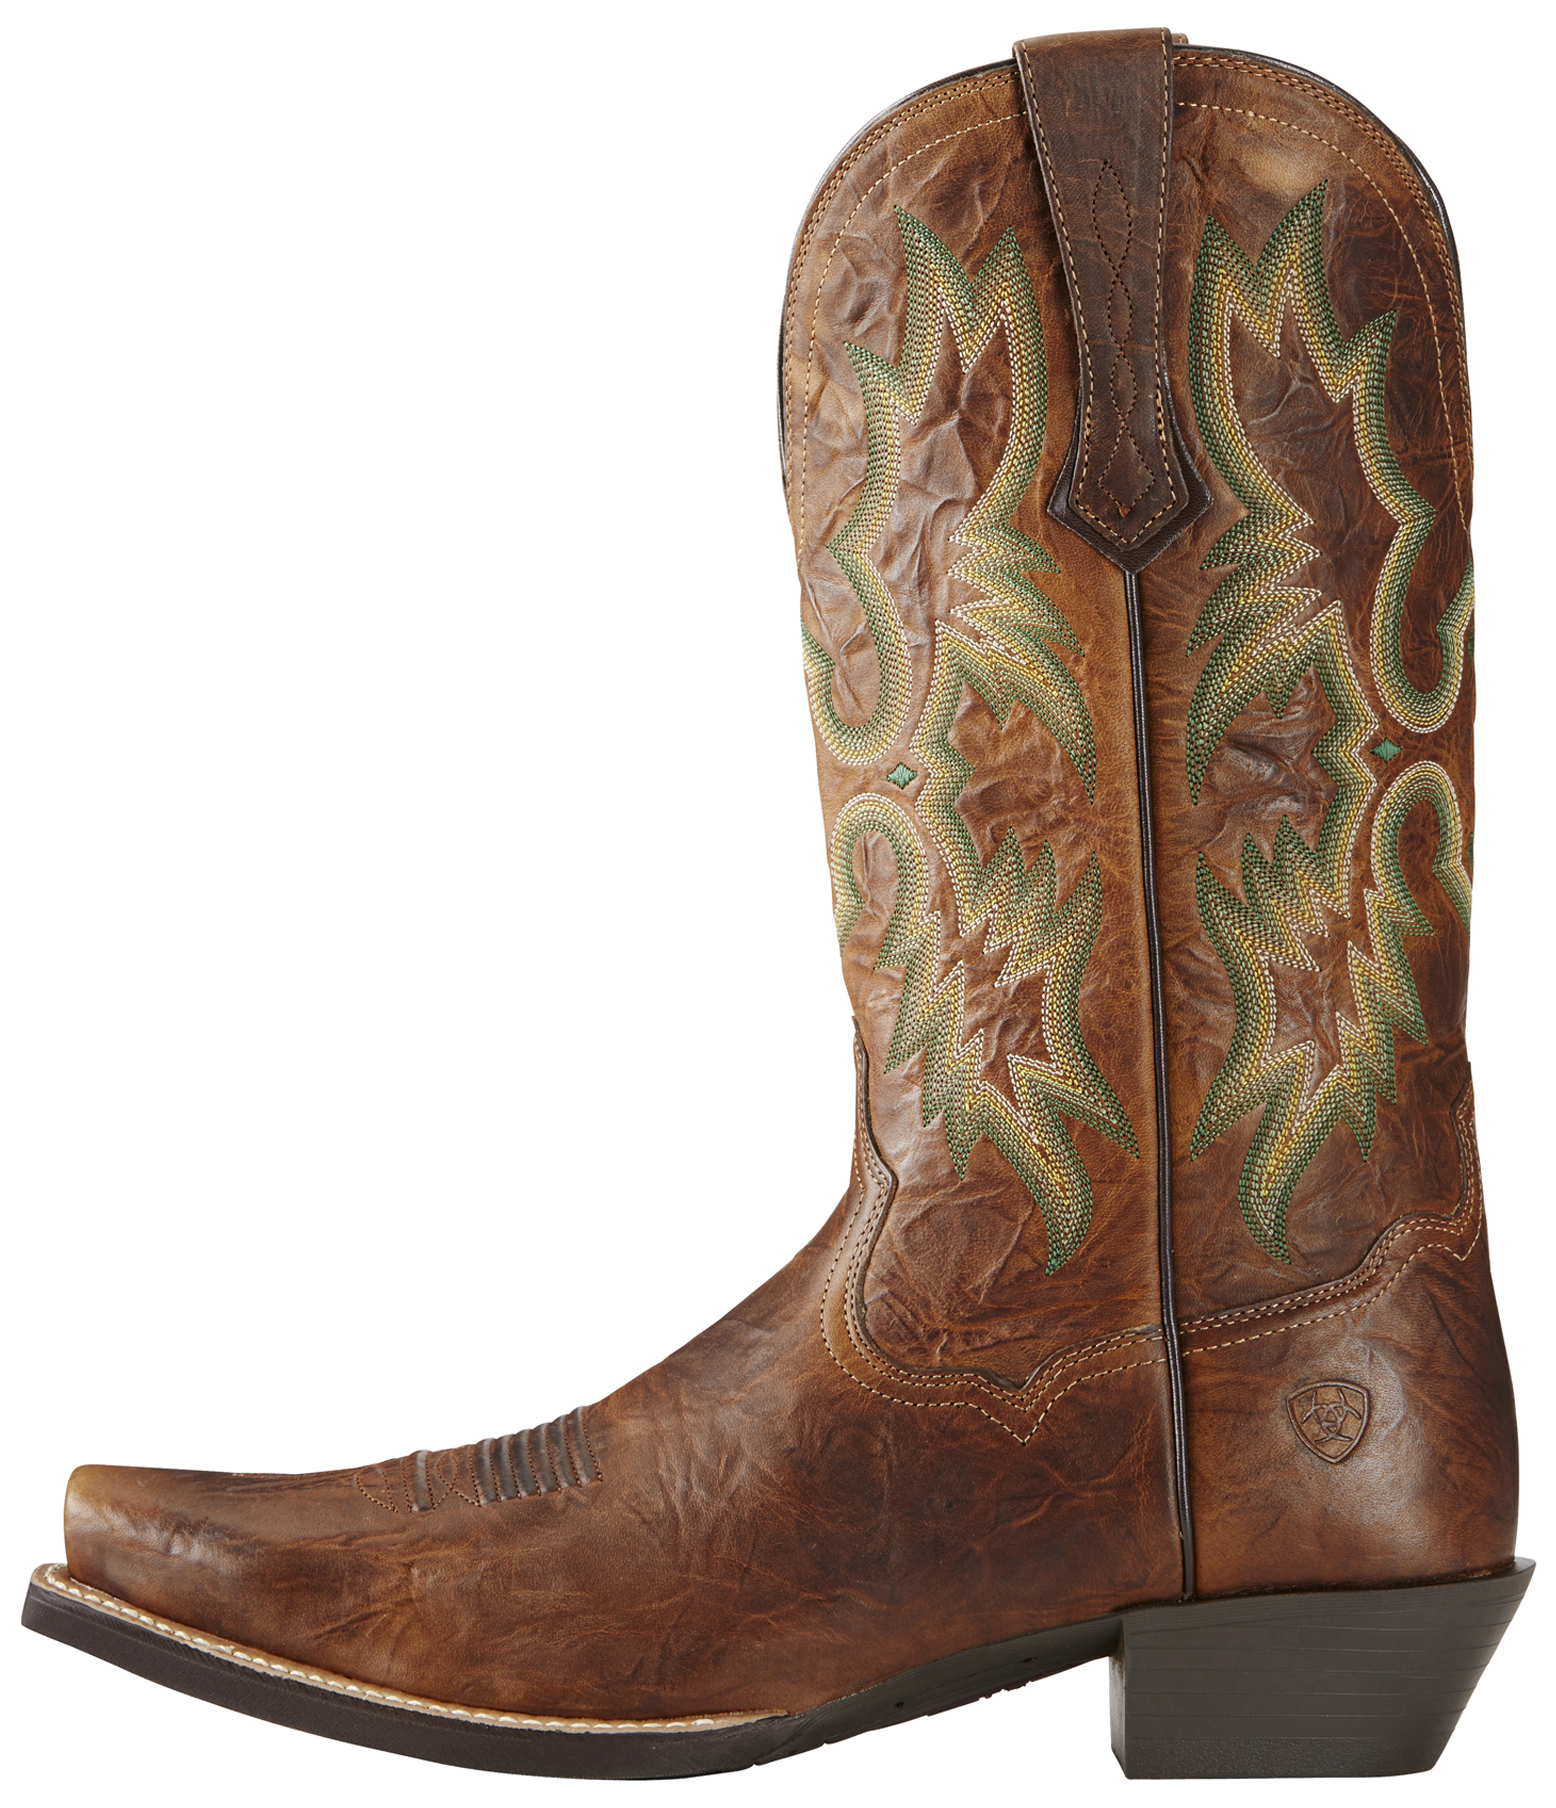 Ariat Men's Brown Dress Tombstone Boots - Snip Toe | Sheplers